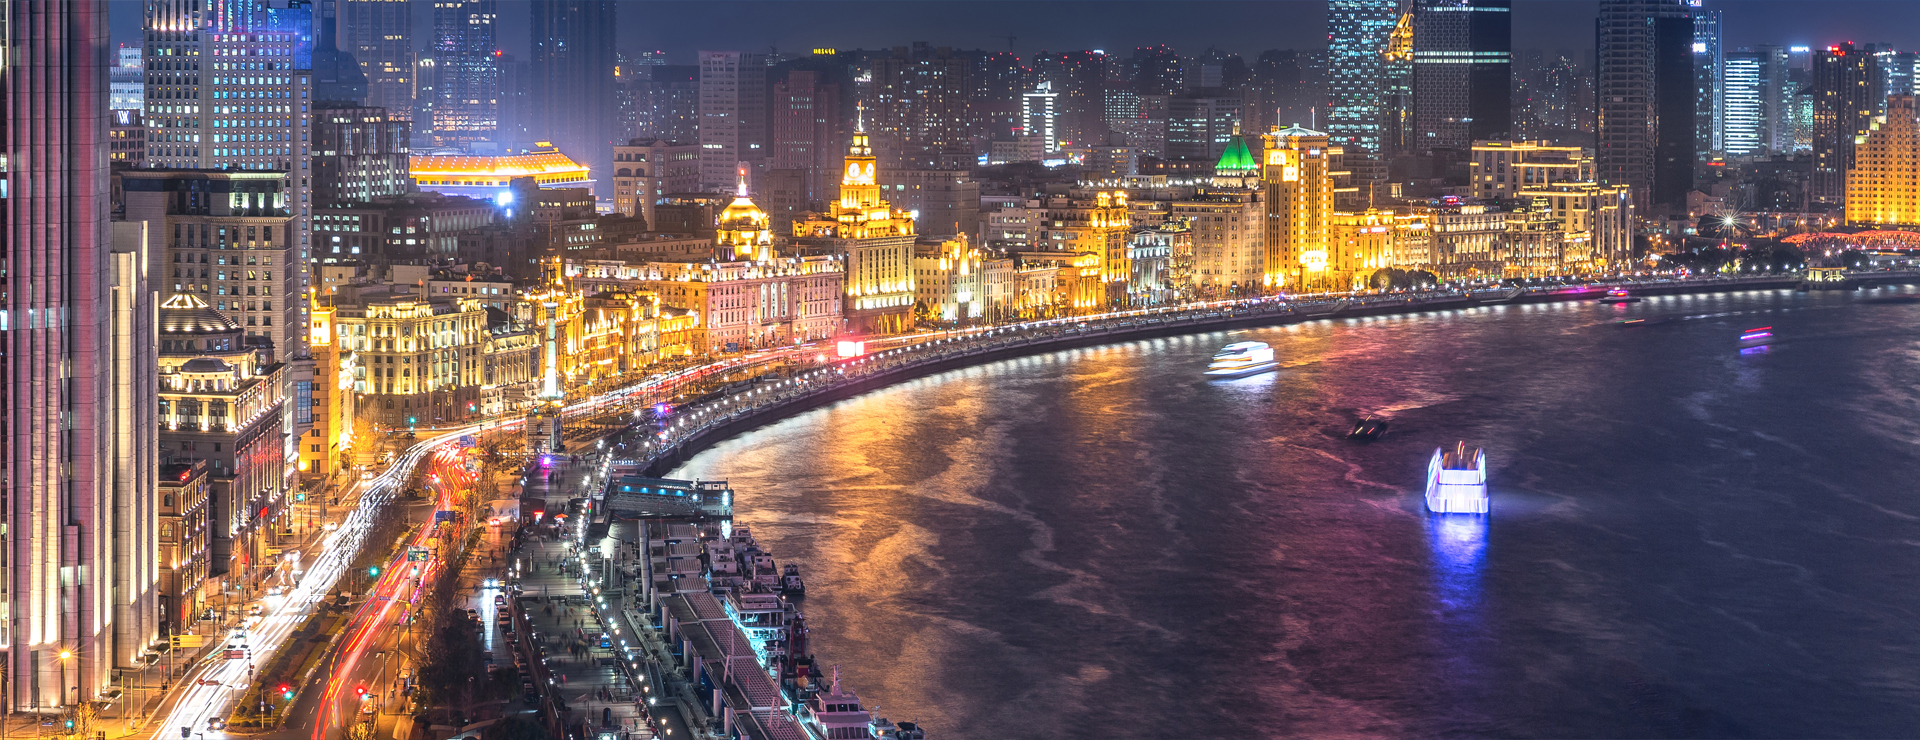 Shanghai – The Bund